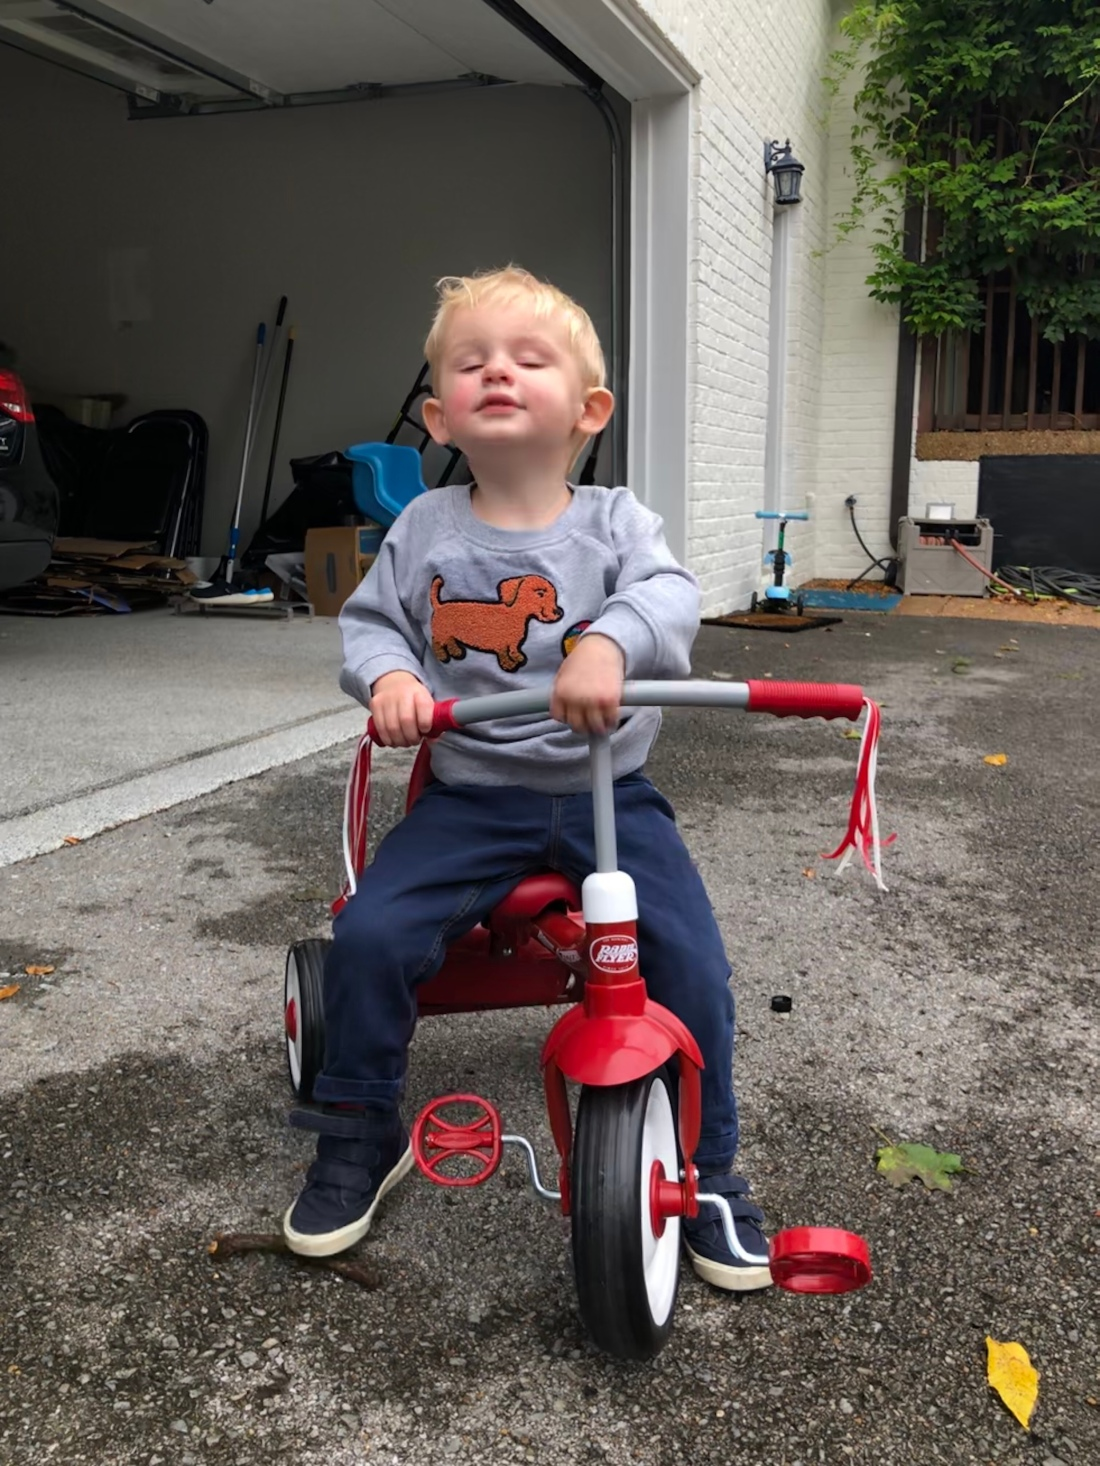 The same blonde haired little boy sits on a red tricycle wearing jeans and a gray sweatshirt with a dog on it. His head is lifting up to the sky.